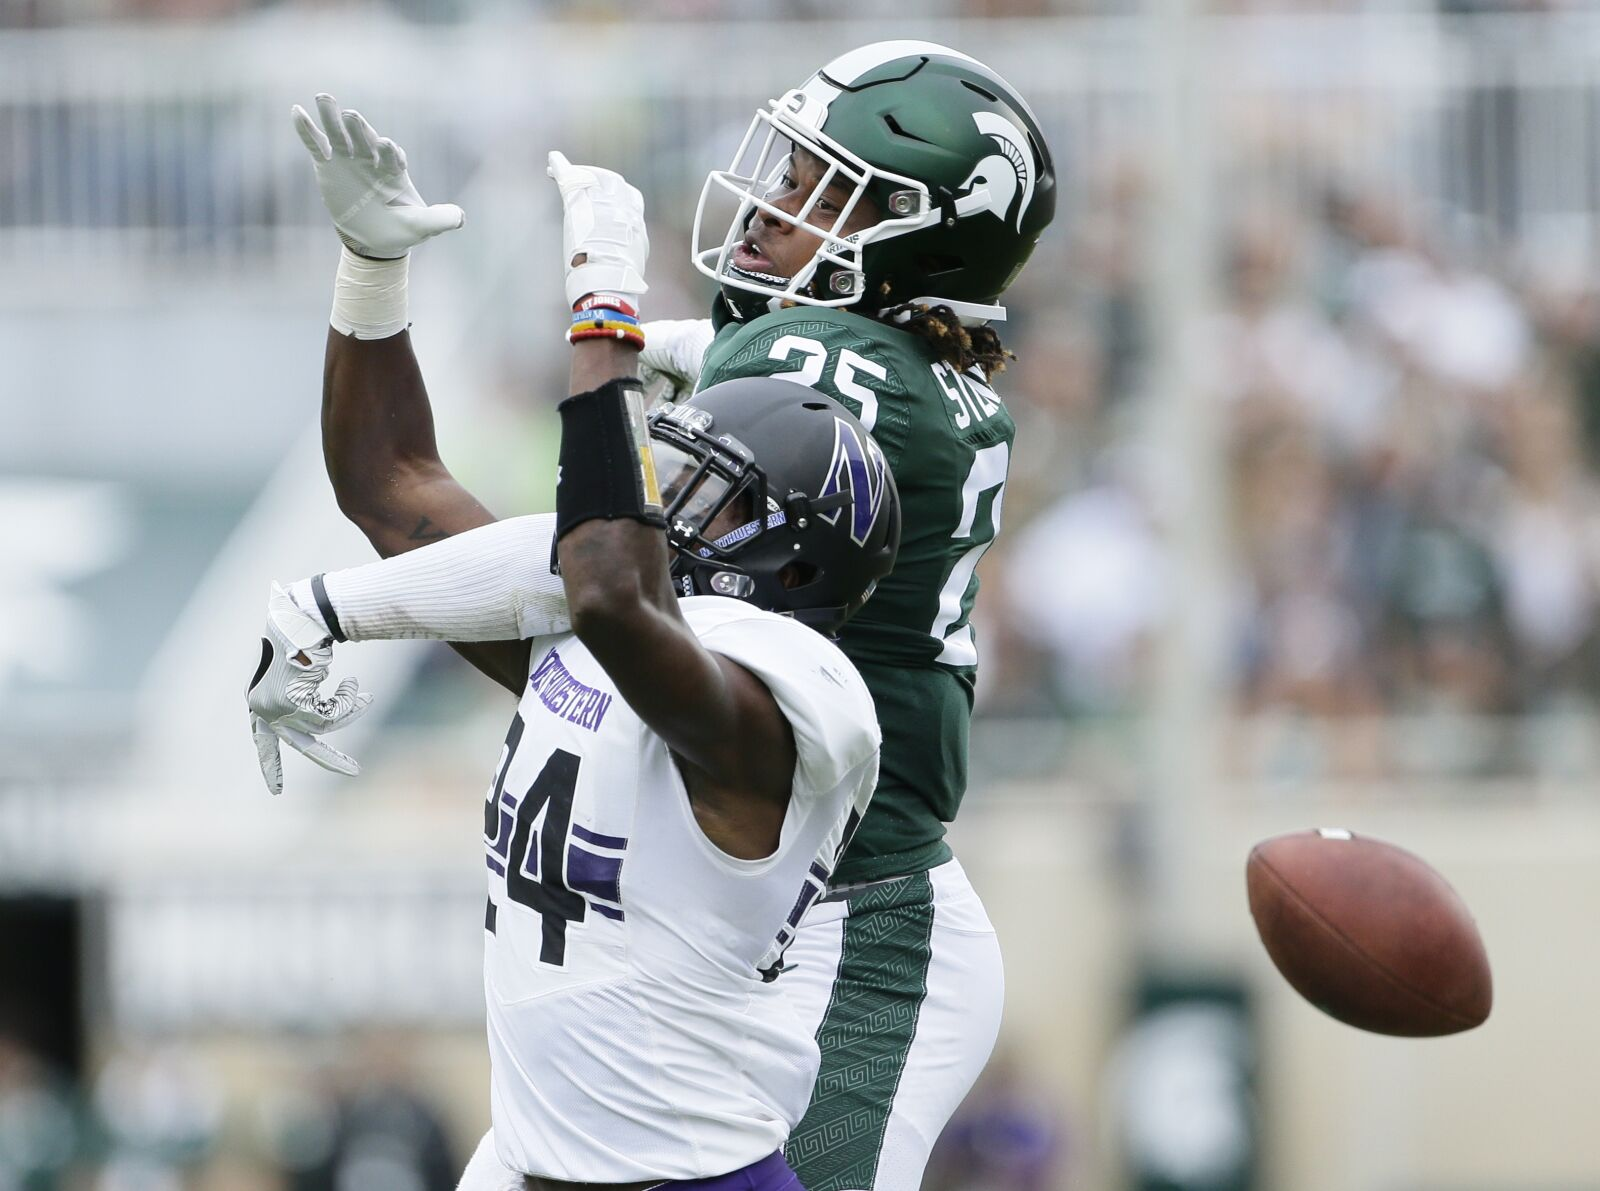 Michigan State Football: Can Spartans end skid against Northwestern?